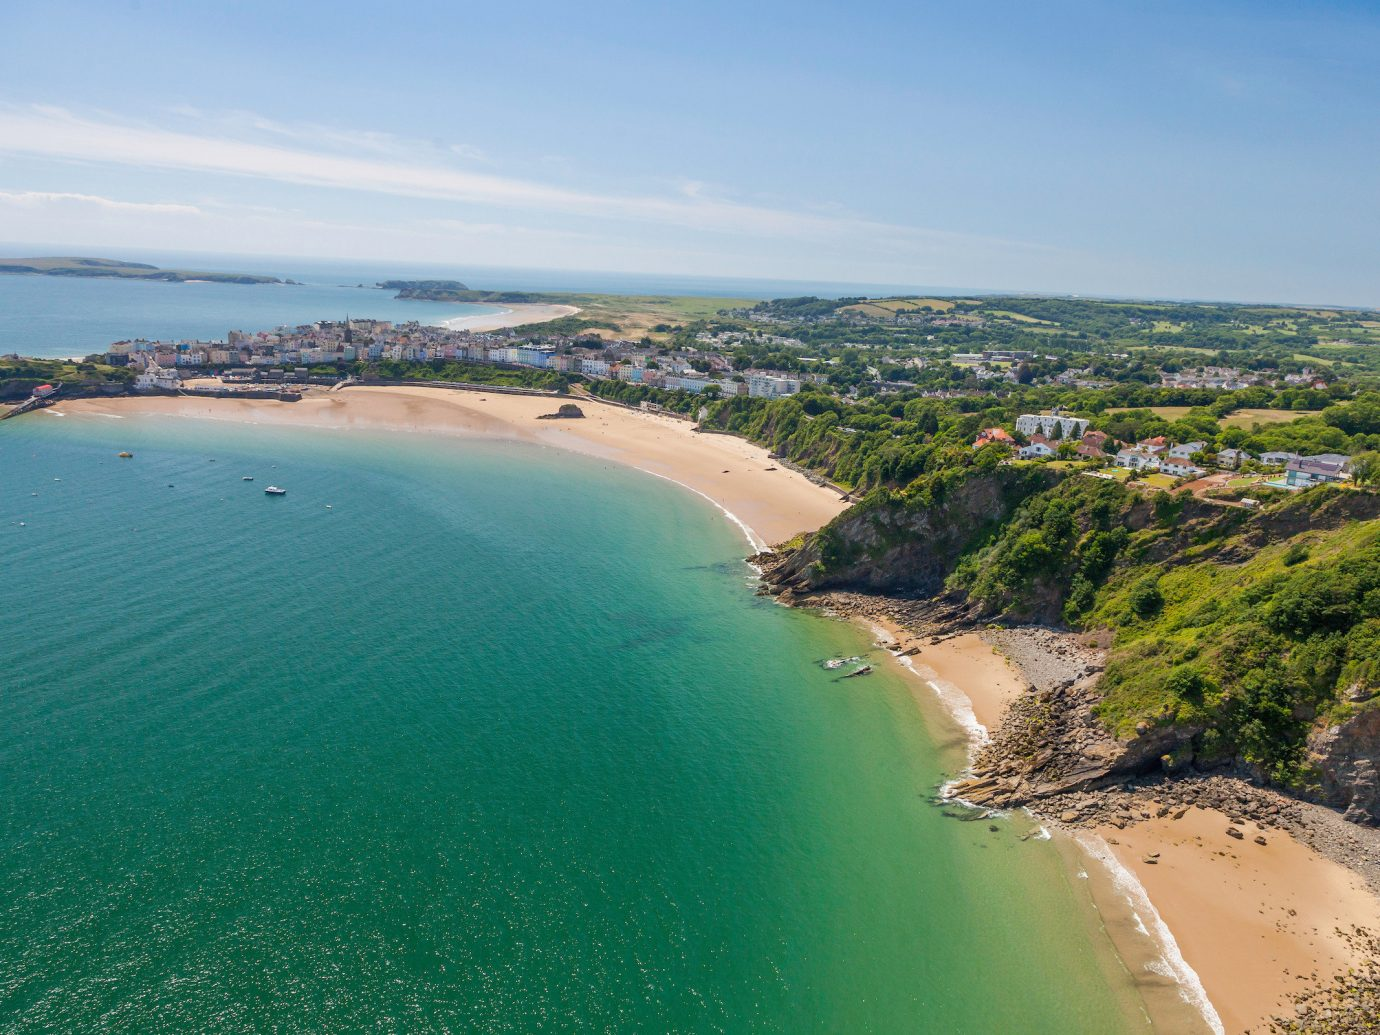 Jetsetter Guides outdoor sky water Nature Coast Ocean Sea body of water landform shore Beach horizon vacation aerial photography bay cape cliff reservoir terrain cove overlooking Island